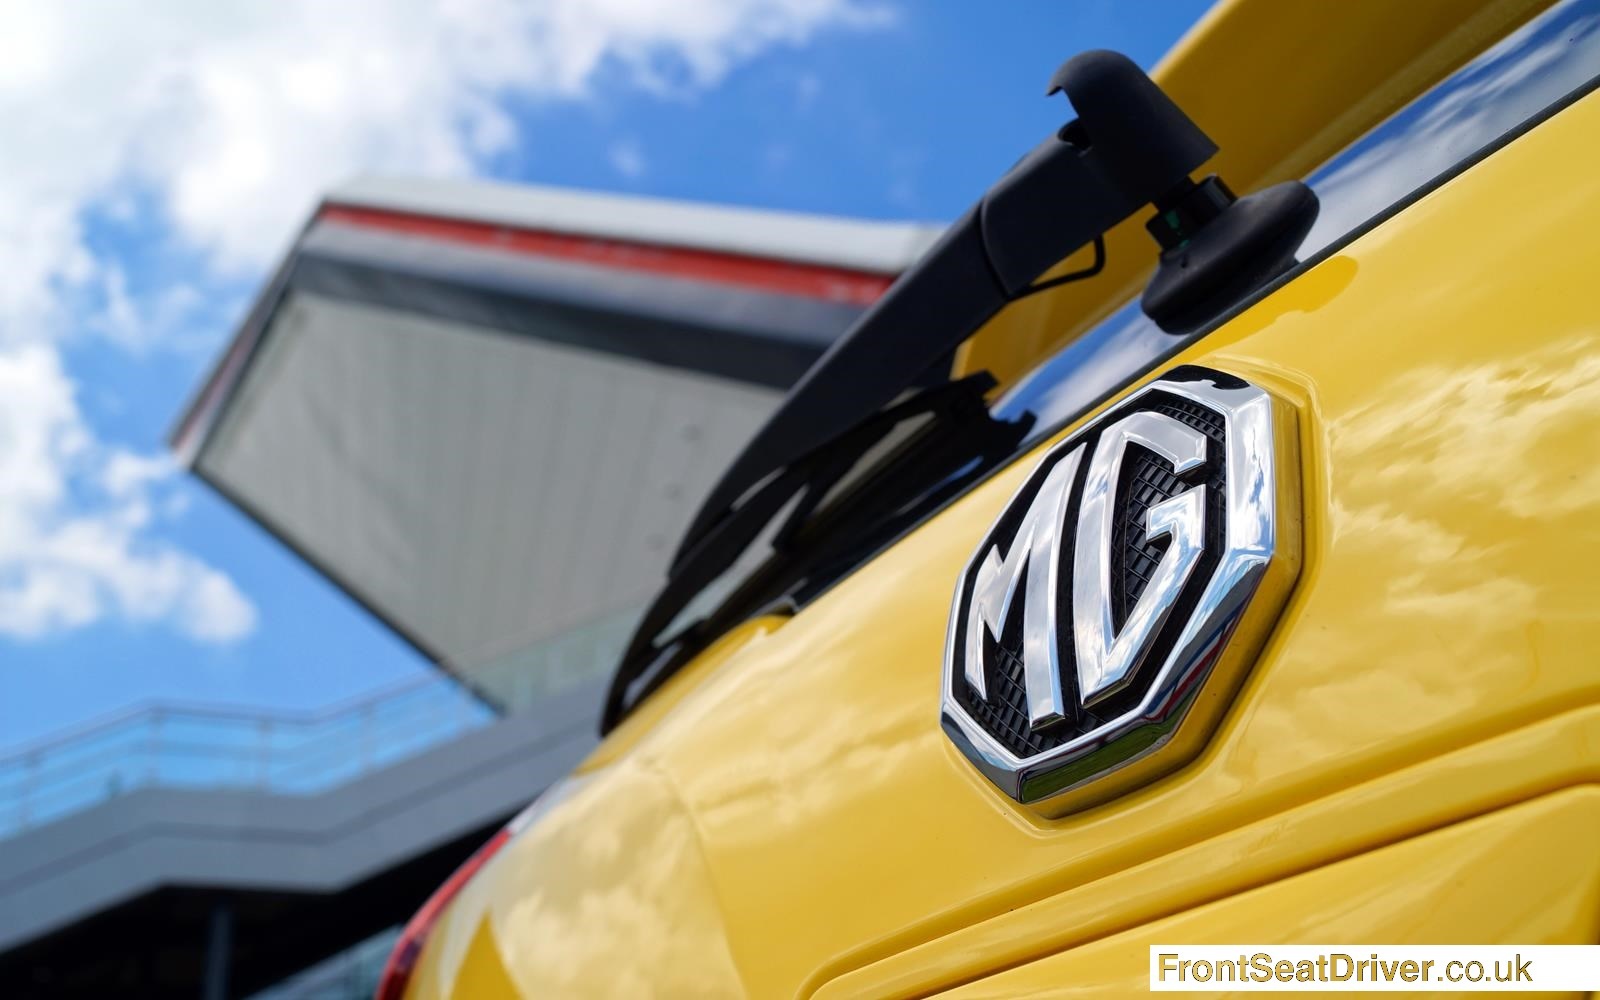 MG 3 2014 Rear Badge Detail Phil Huff FrontSeatDriver.co.uk